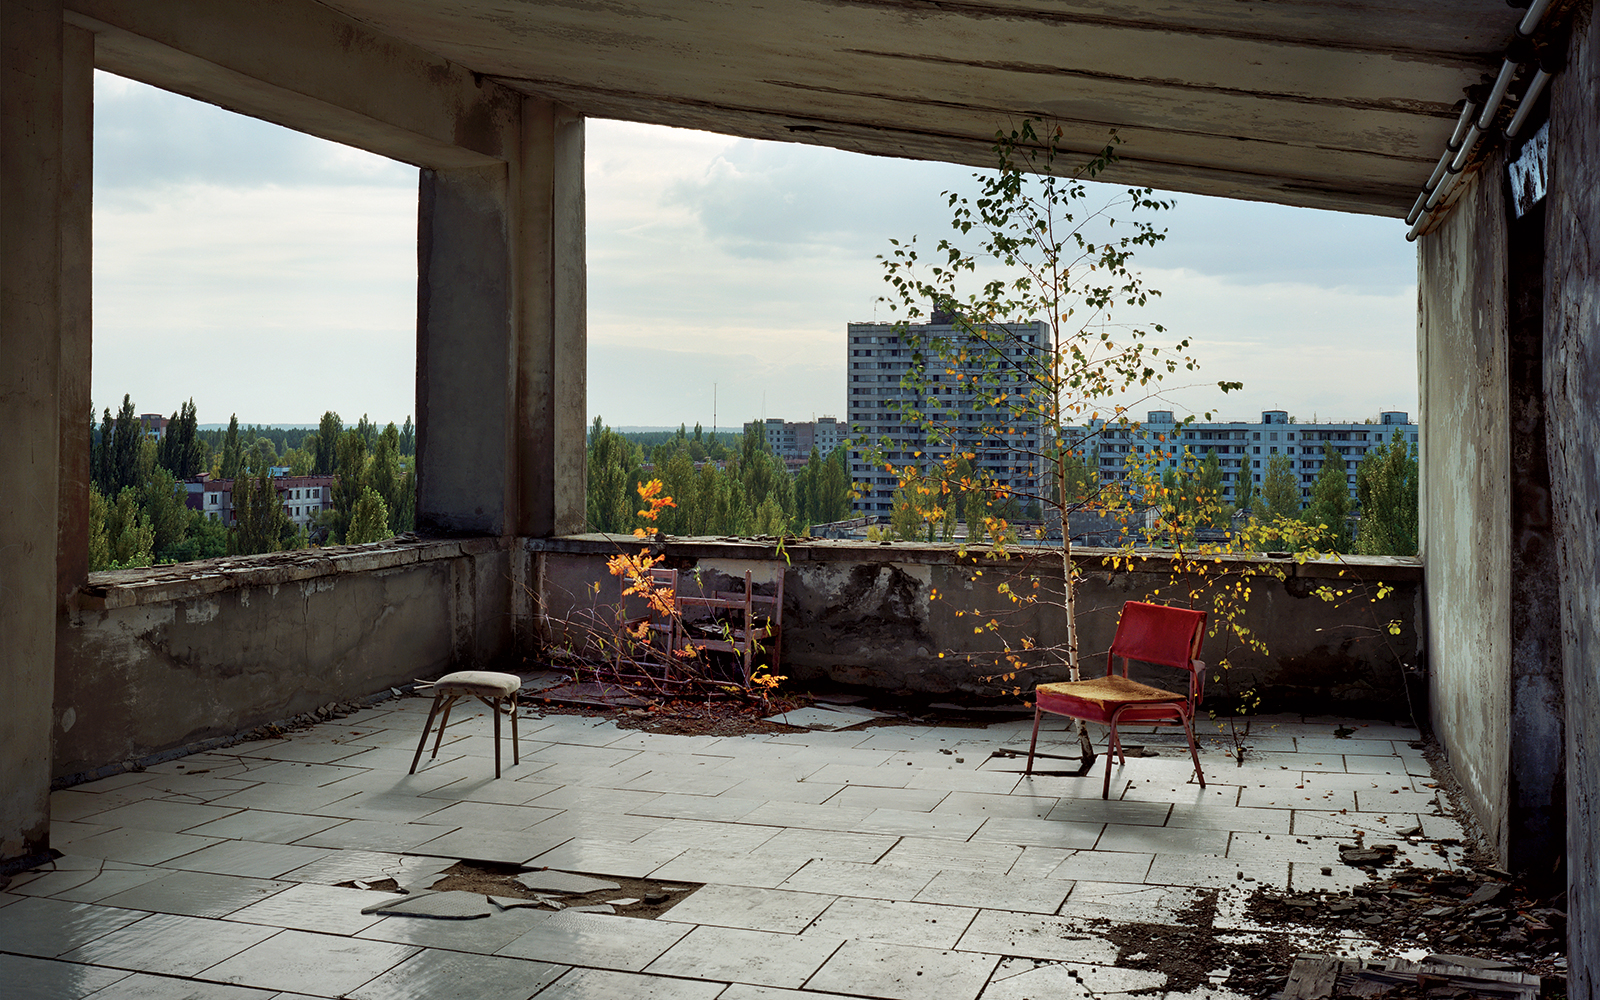 The central town hotel  Polessye  or  Polyssia  in the empty ghost town of Pripyat. Chernobyl exclusion zone. Ukraine. 2008